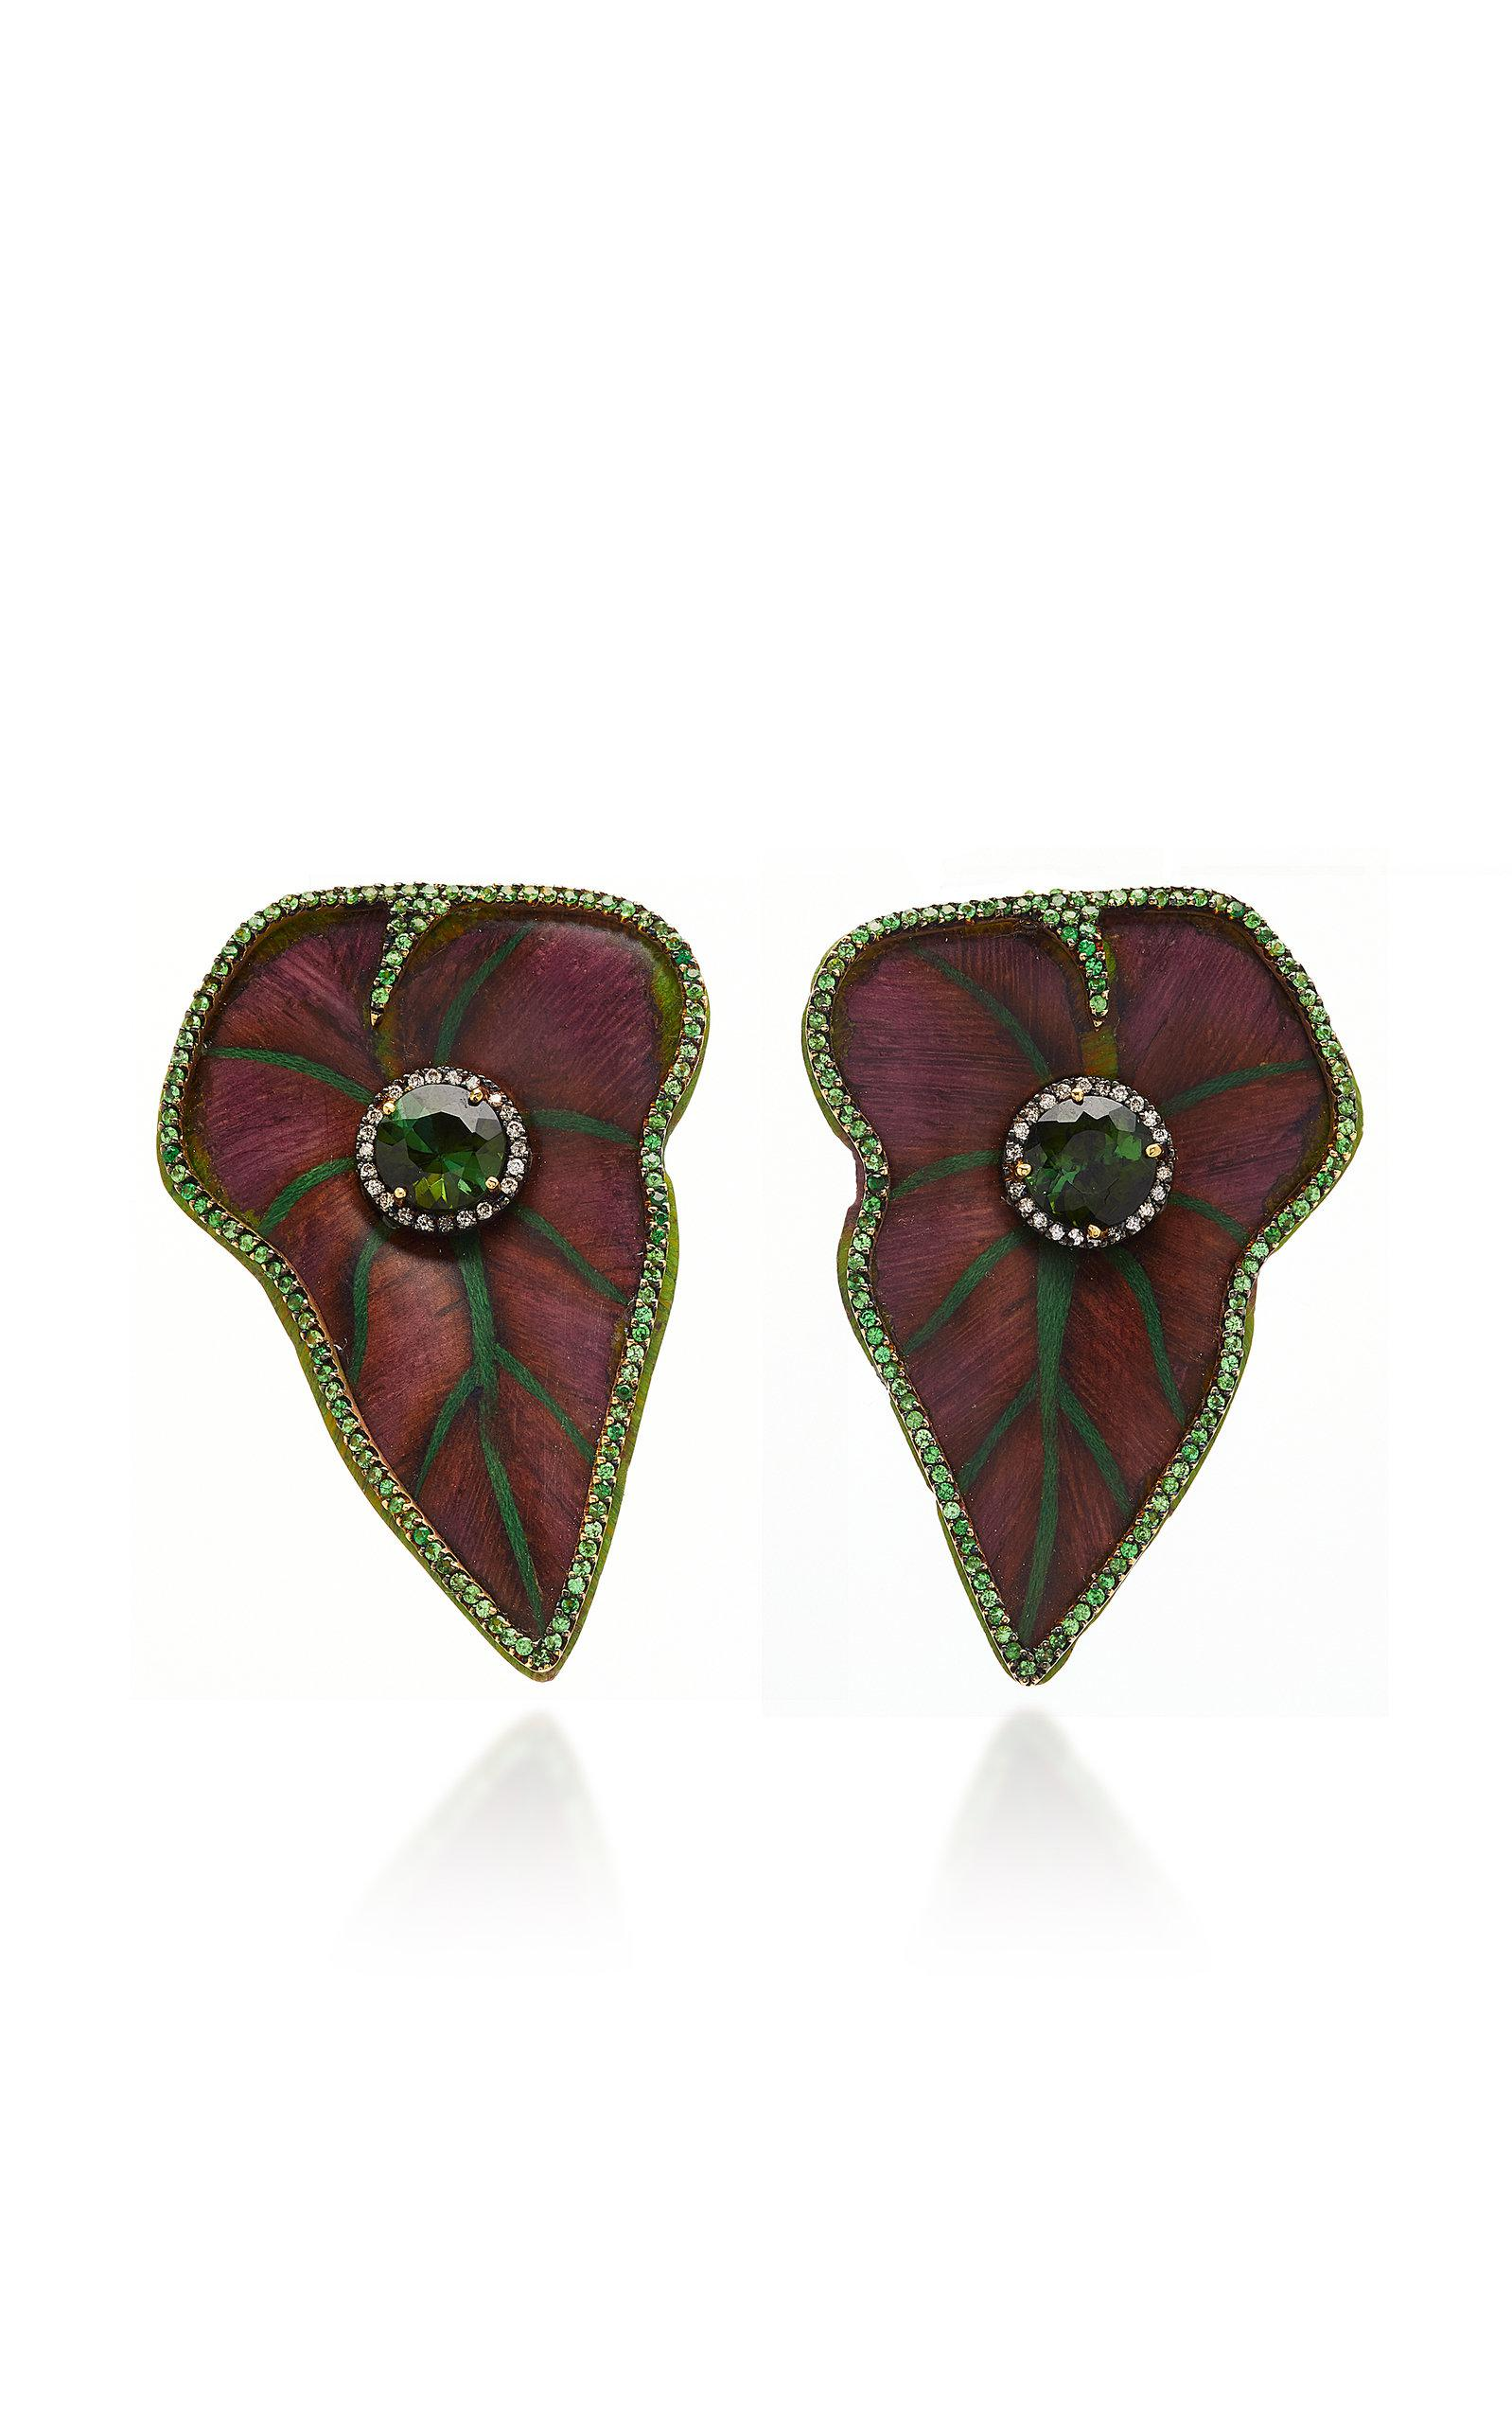 Sculptural Botanical Marquetry Butterfly Earrings Silvia Furmanovich jj0i61m